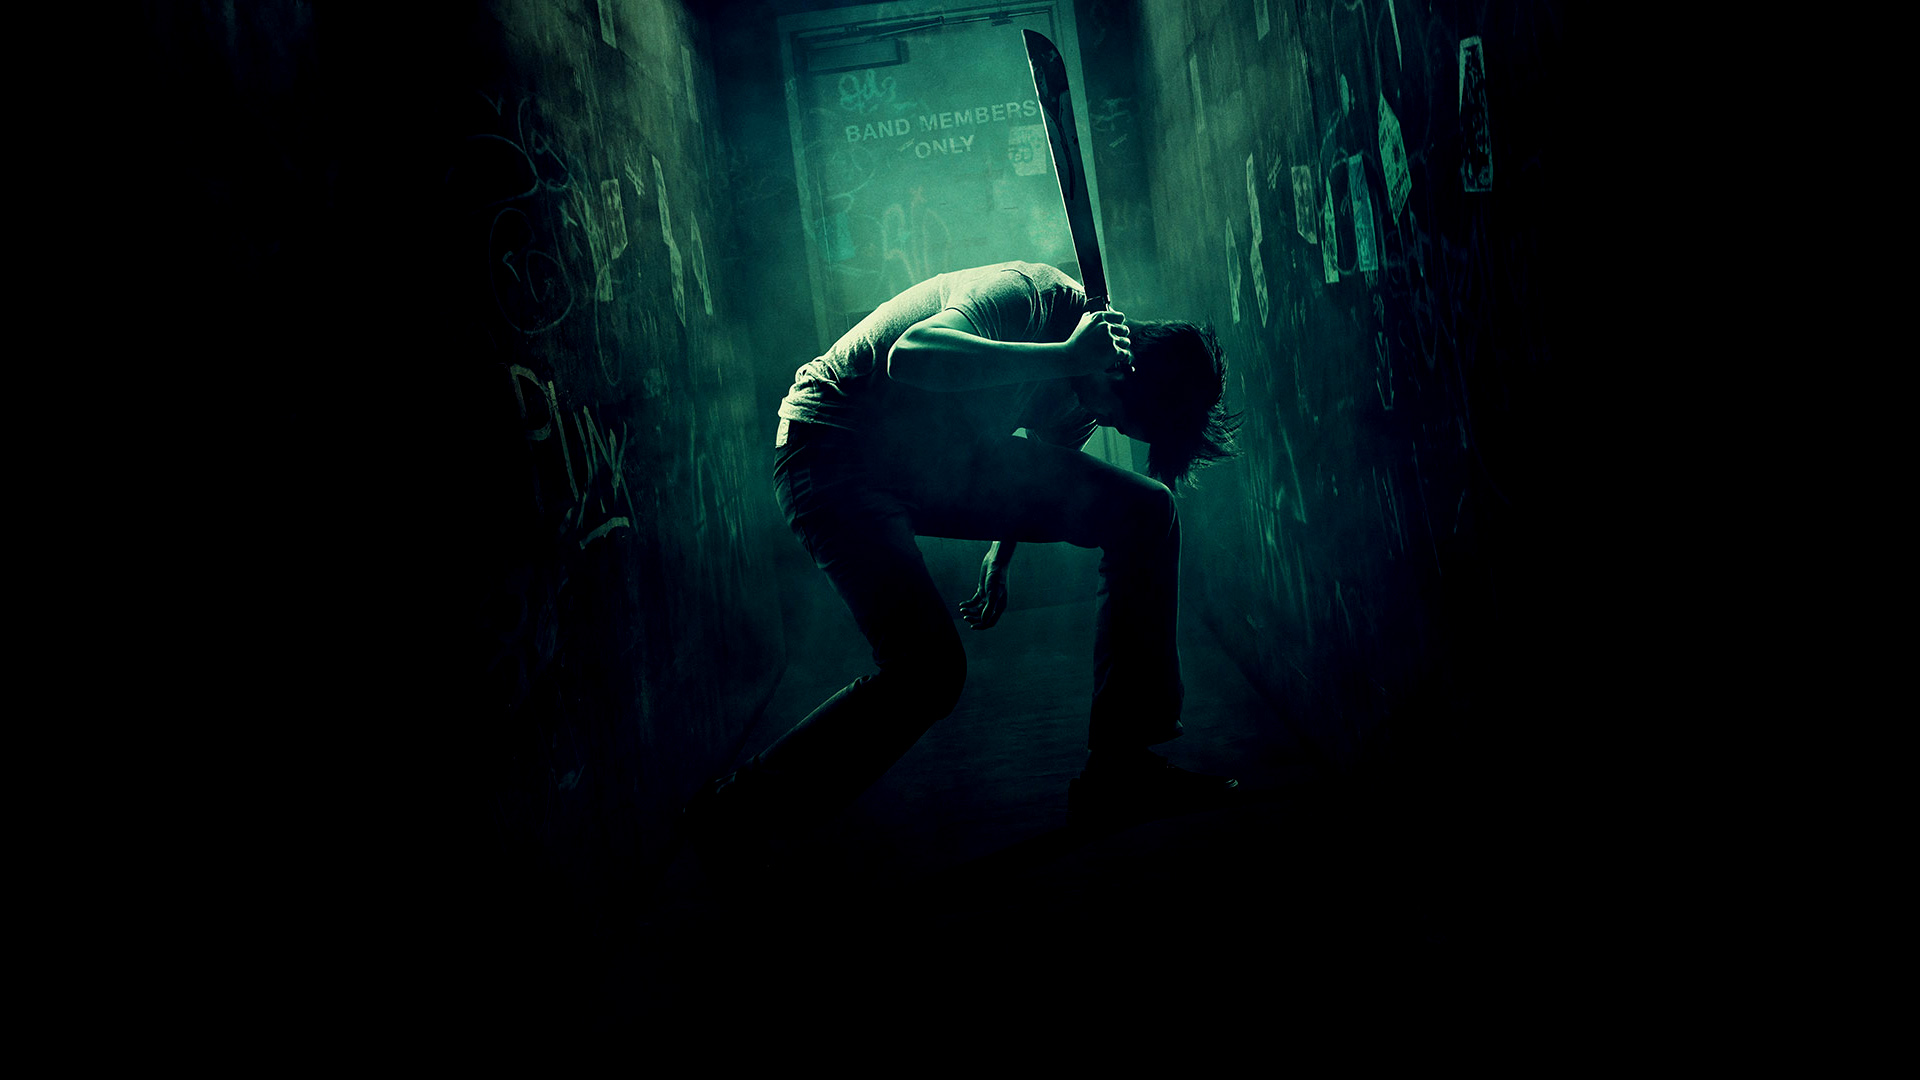 6 Green Room HD Wallpapers  Backgrounds  Wallpaper Abyss